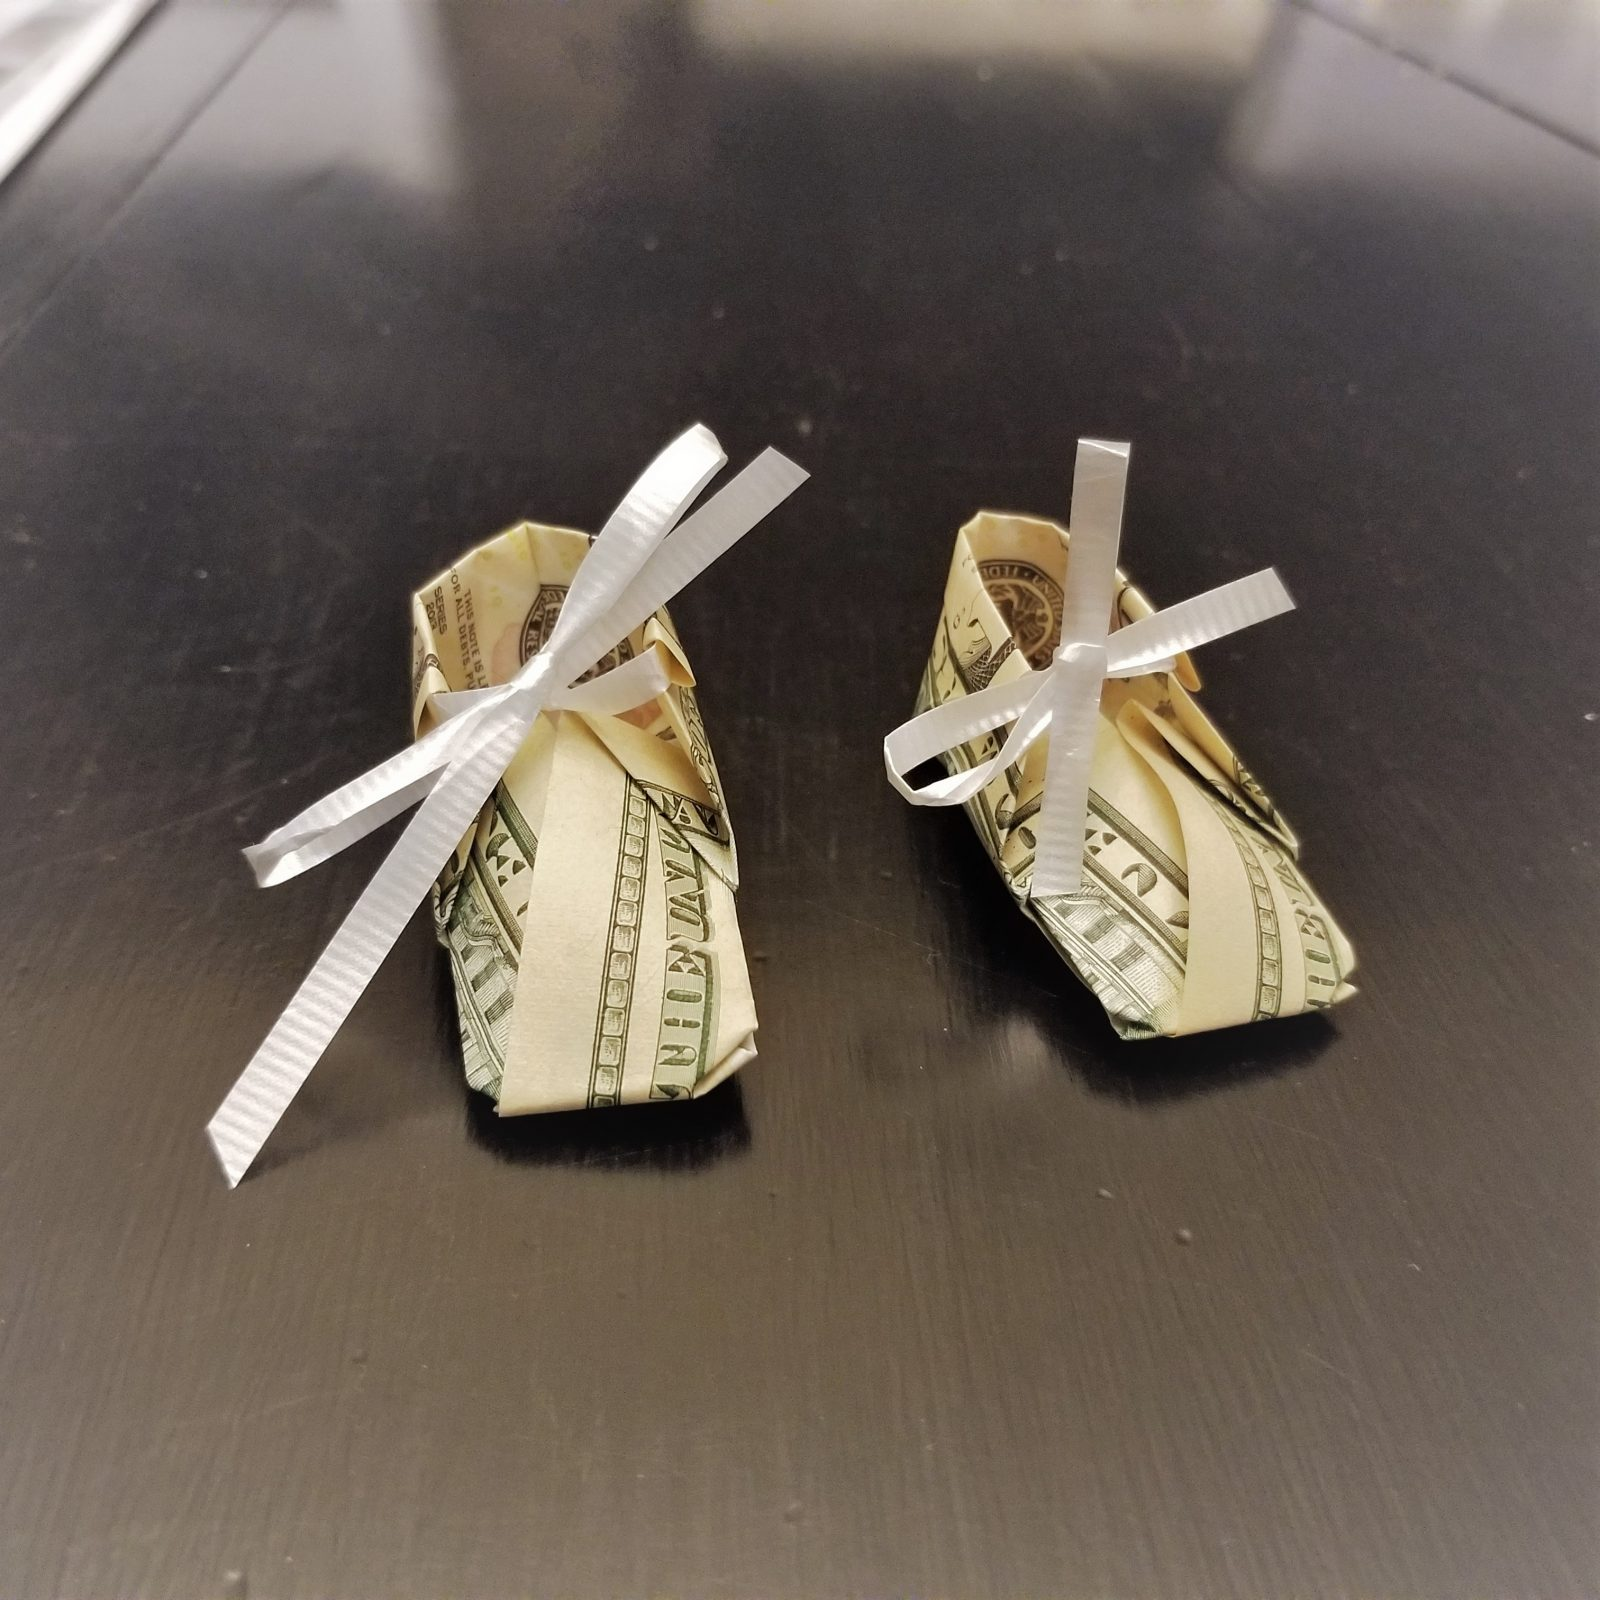 money origami baby booties on black table